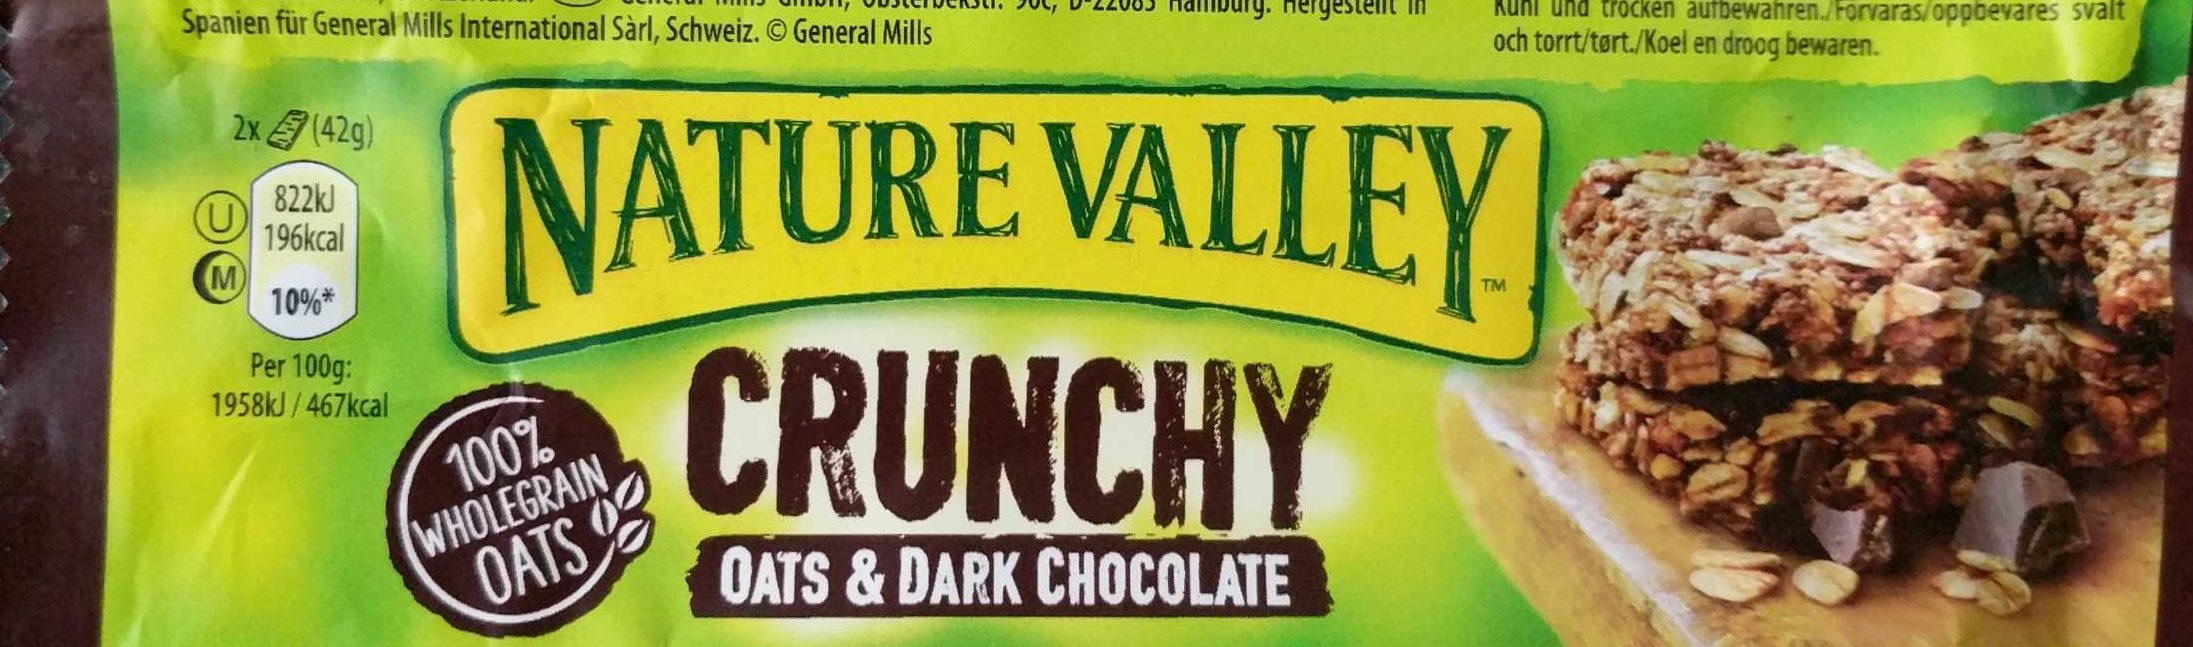 Nature Valley Crunchy Oats & Chocolate, Haferf. .. - Product - en